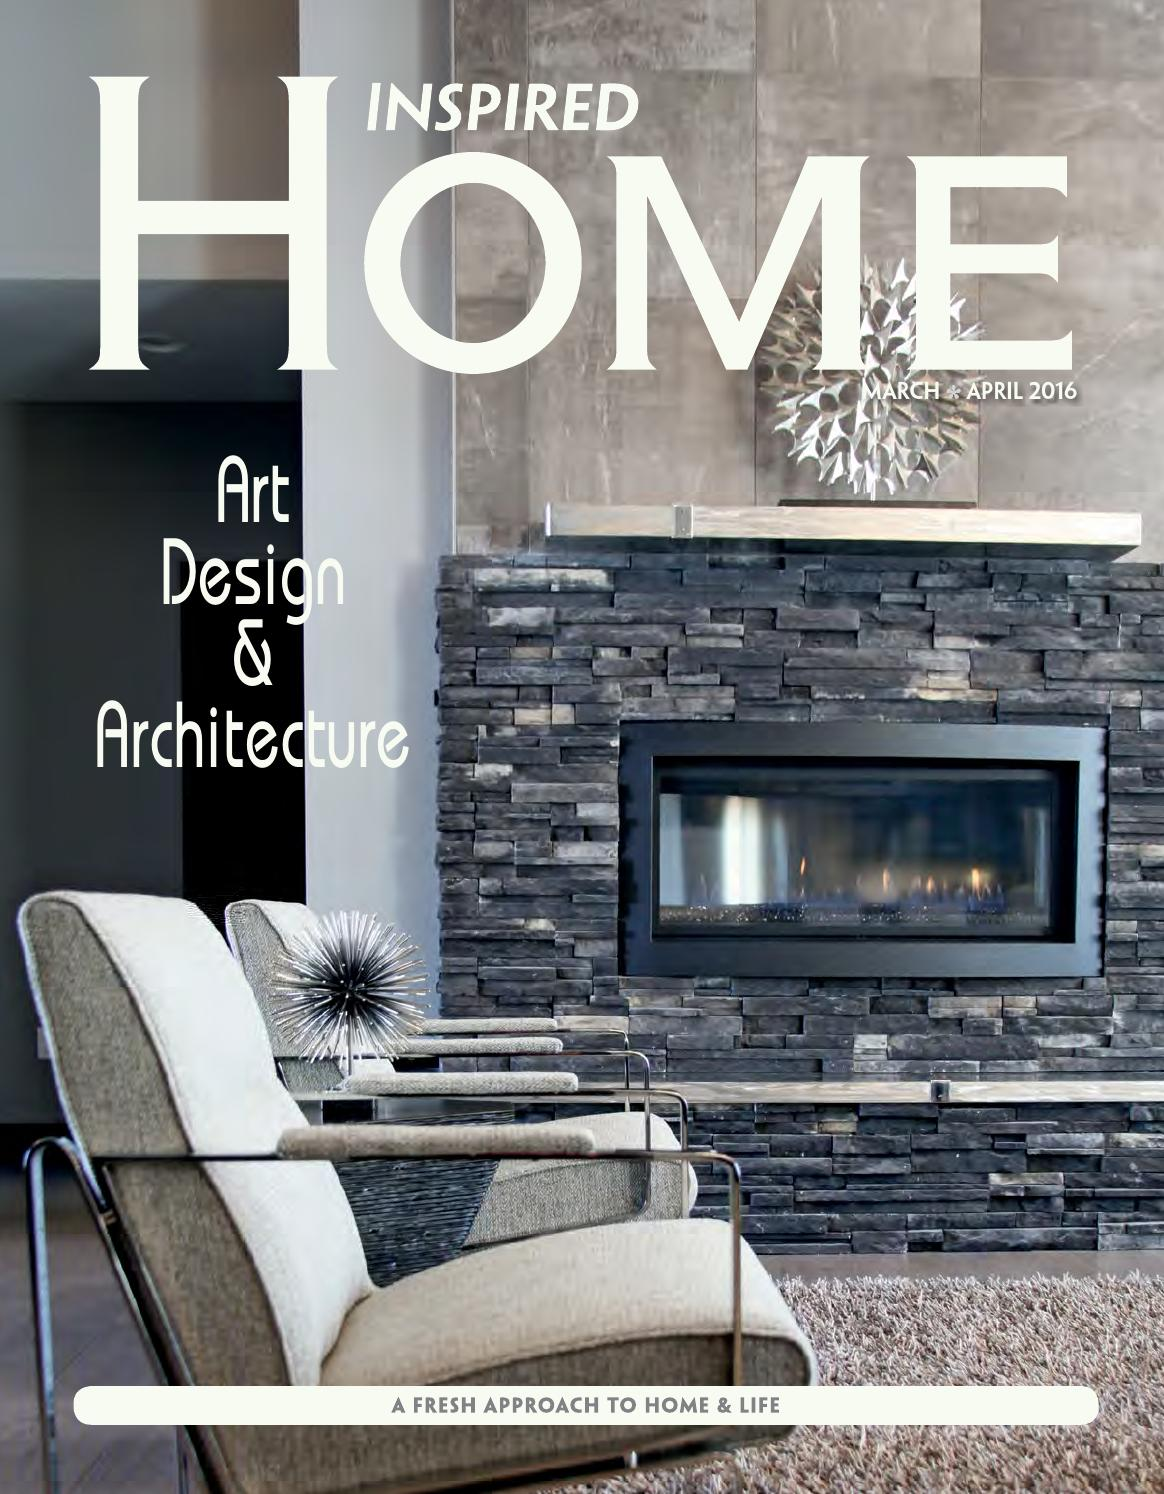 inspired home magazine march april 2016 by inspired home